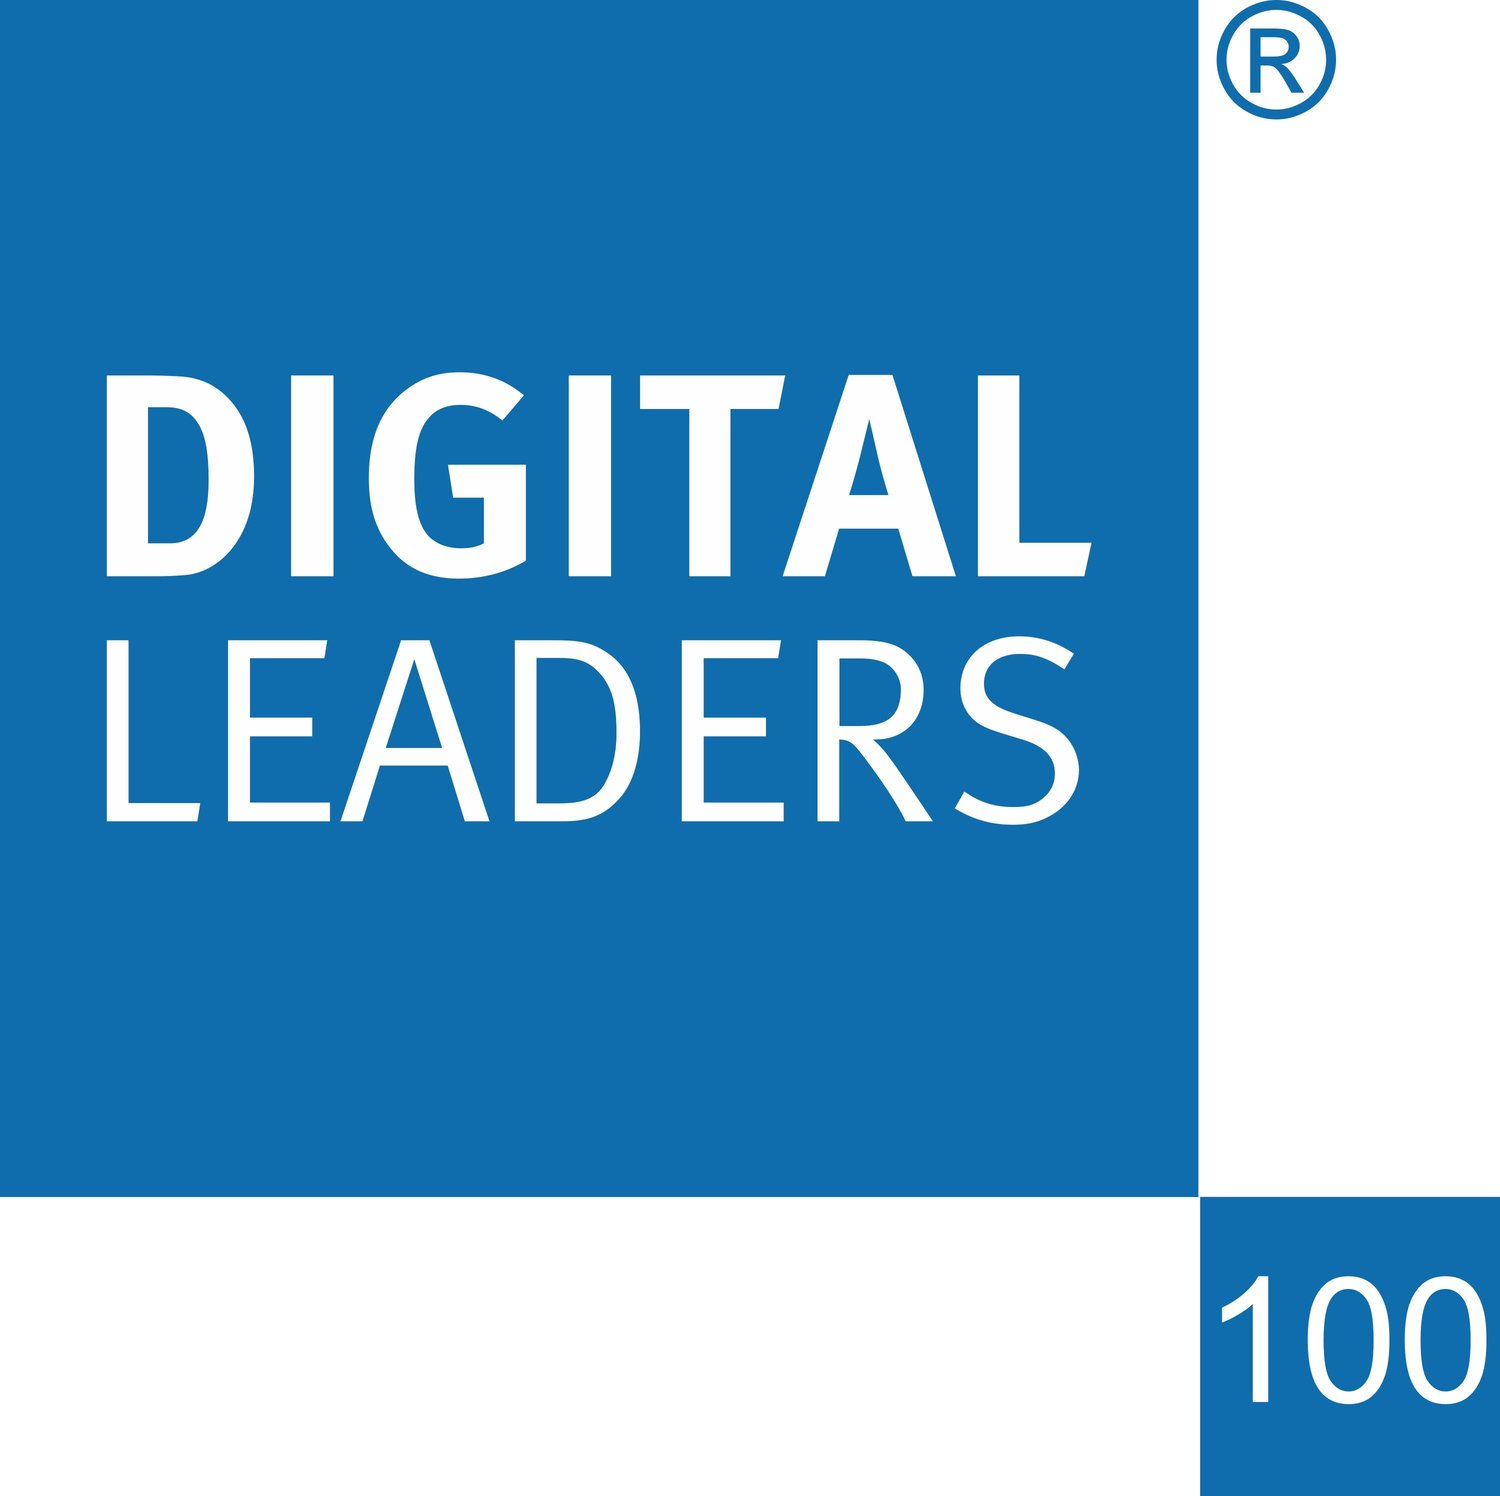 Digital+Leaders®+logo-1+large+high+res+(2).jpg